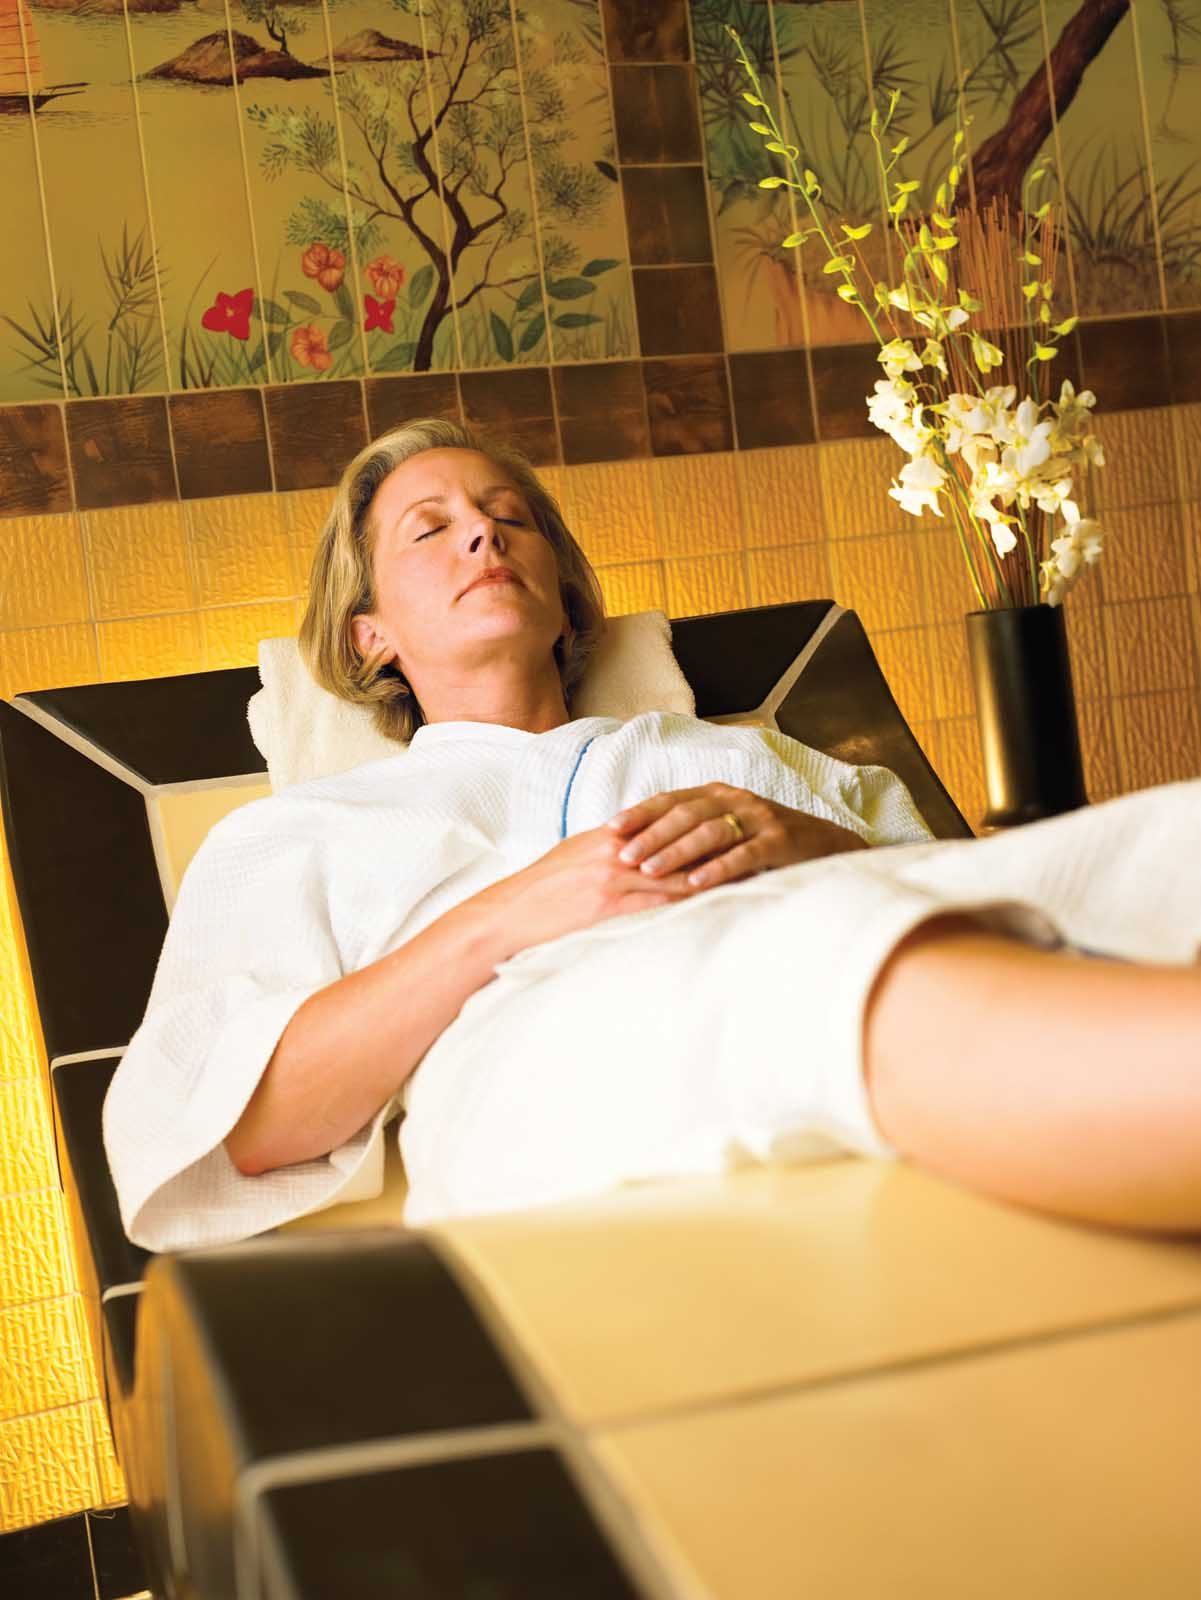 Make time for serenity during your Princess Cruise. Head to the Lotus Spa to relax and get pampered with a body wrap, body therapy or a number of other spa services.